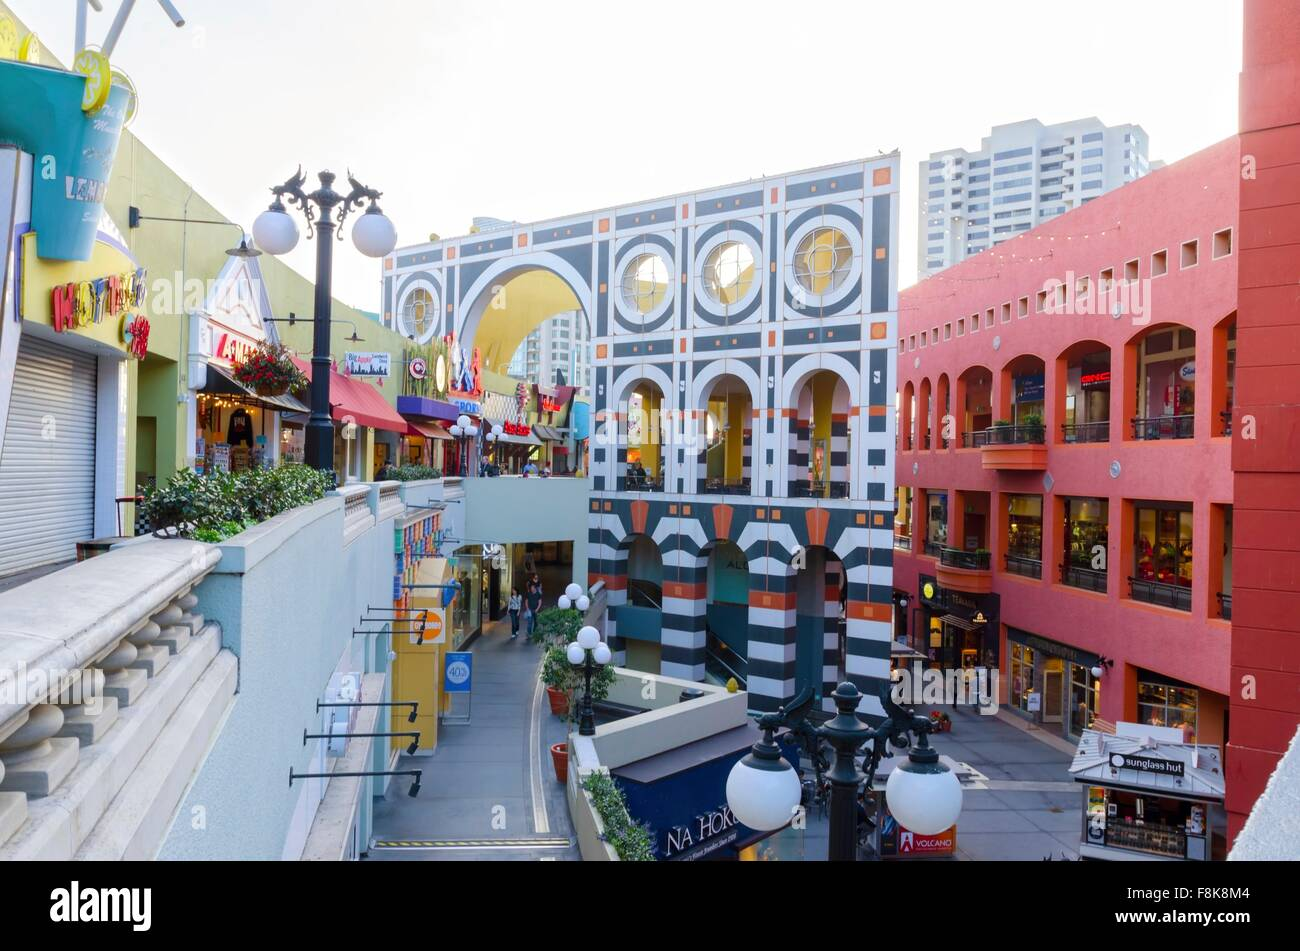 Westfield Horton Plaza is located in San Diego, California and offers stores - Scroll down for Westfield Horton Plaza shopping information: store list 4/4(4).